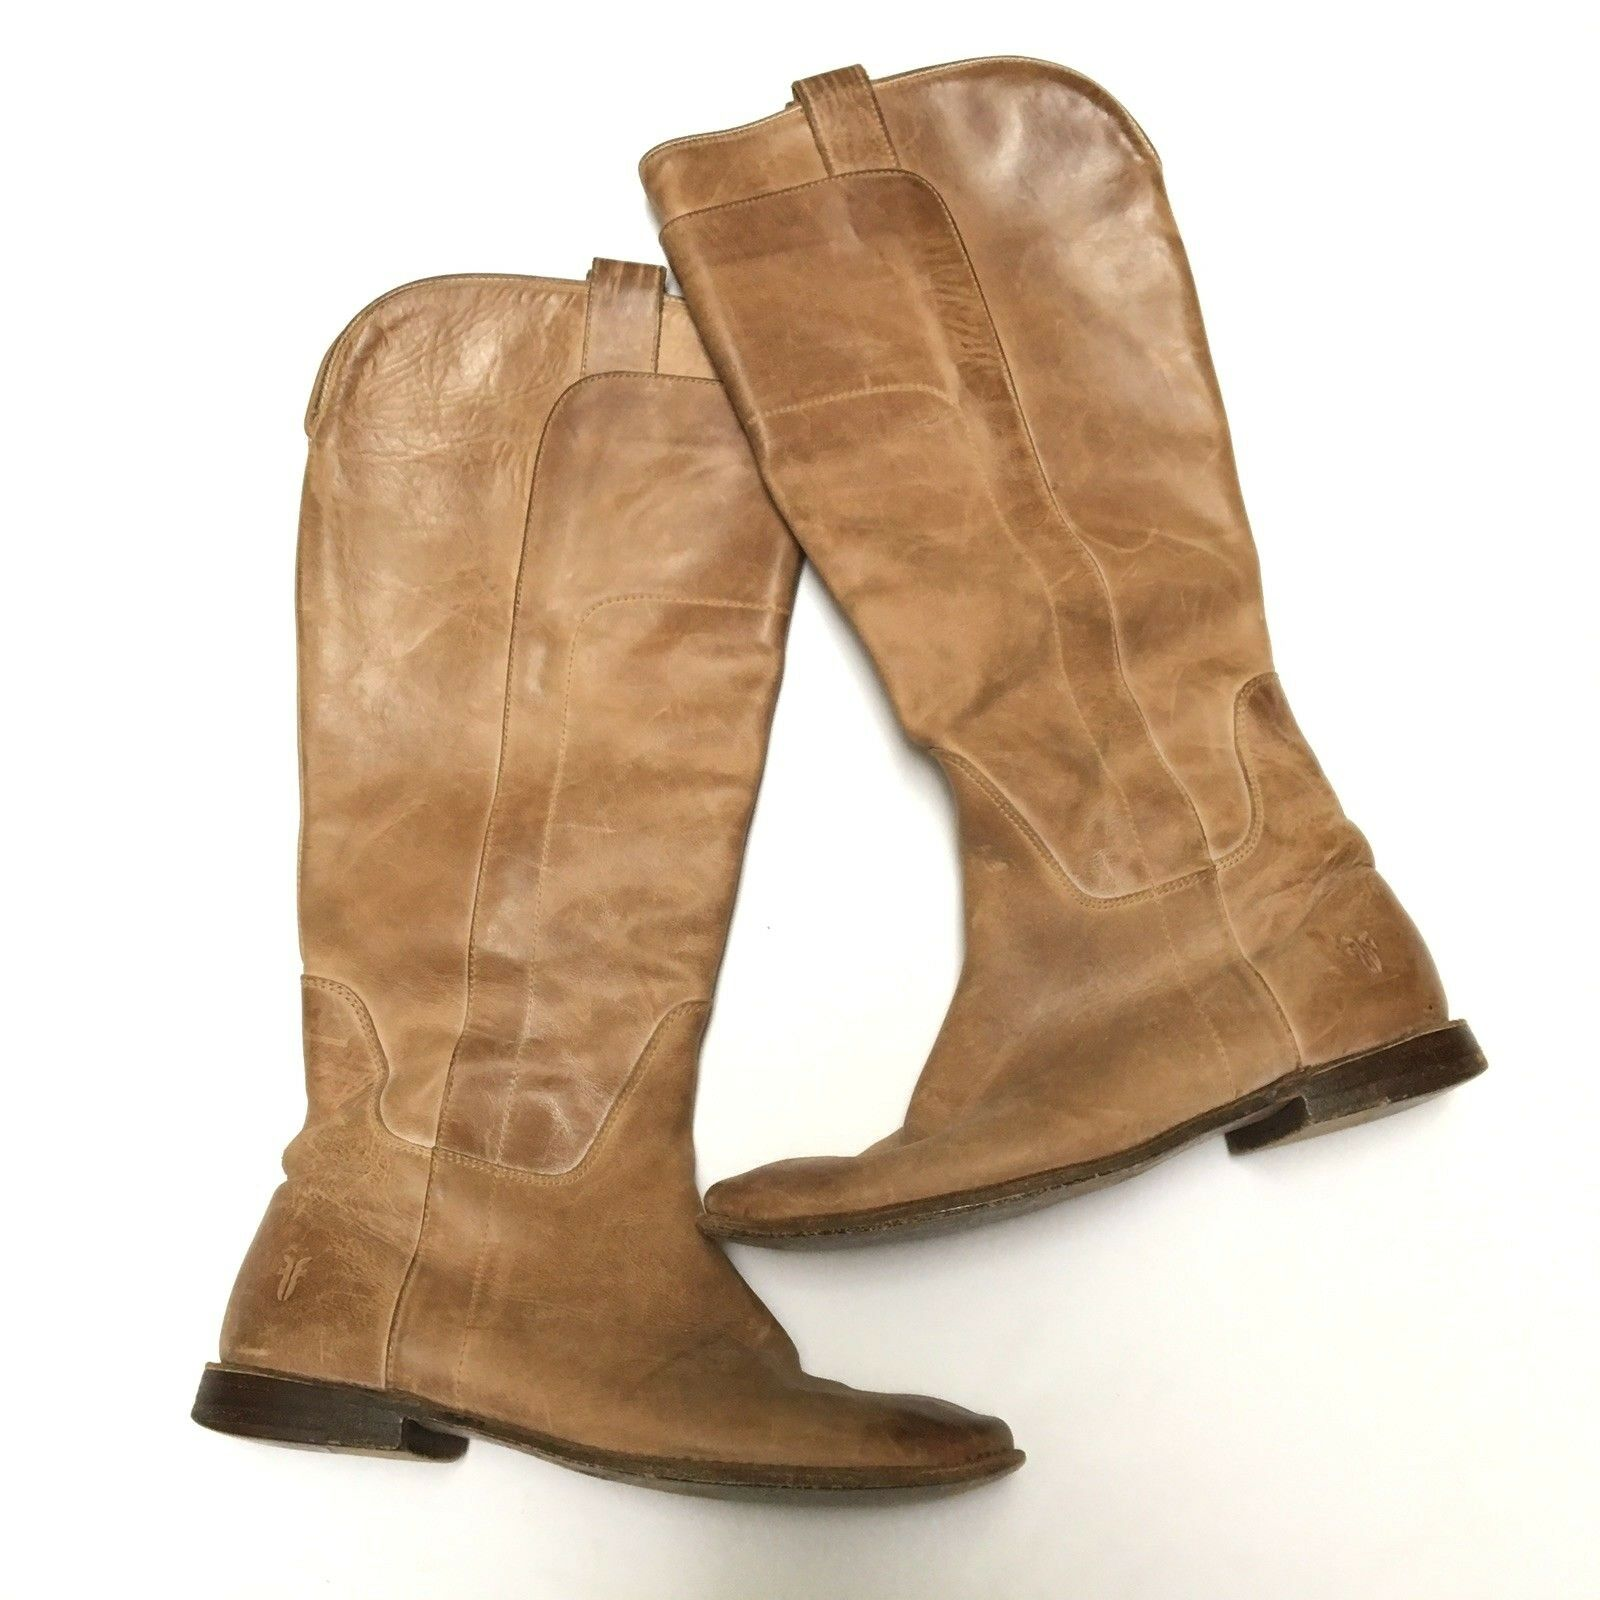 Frye Size 9 Tan Brown Antiqued Distressed Leather Paige Tall Riding Boots 4003